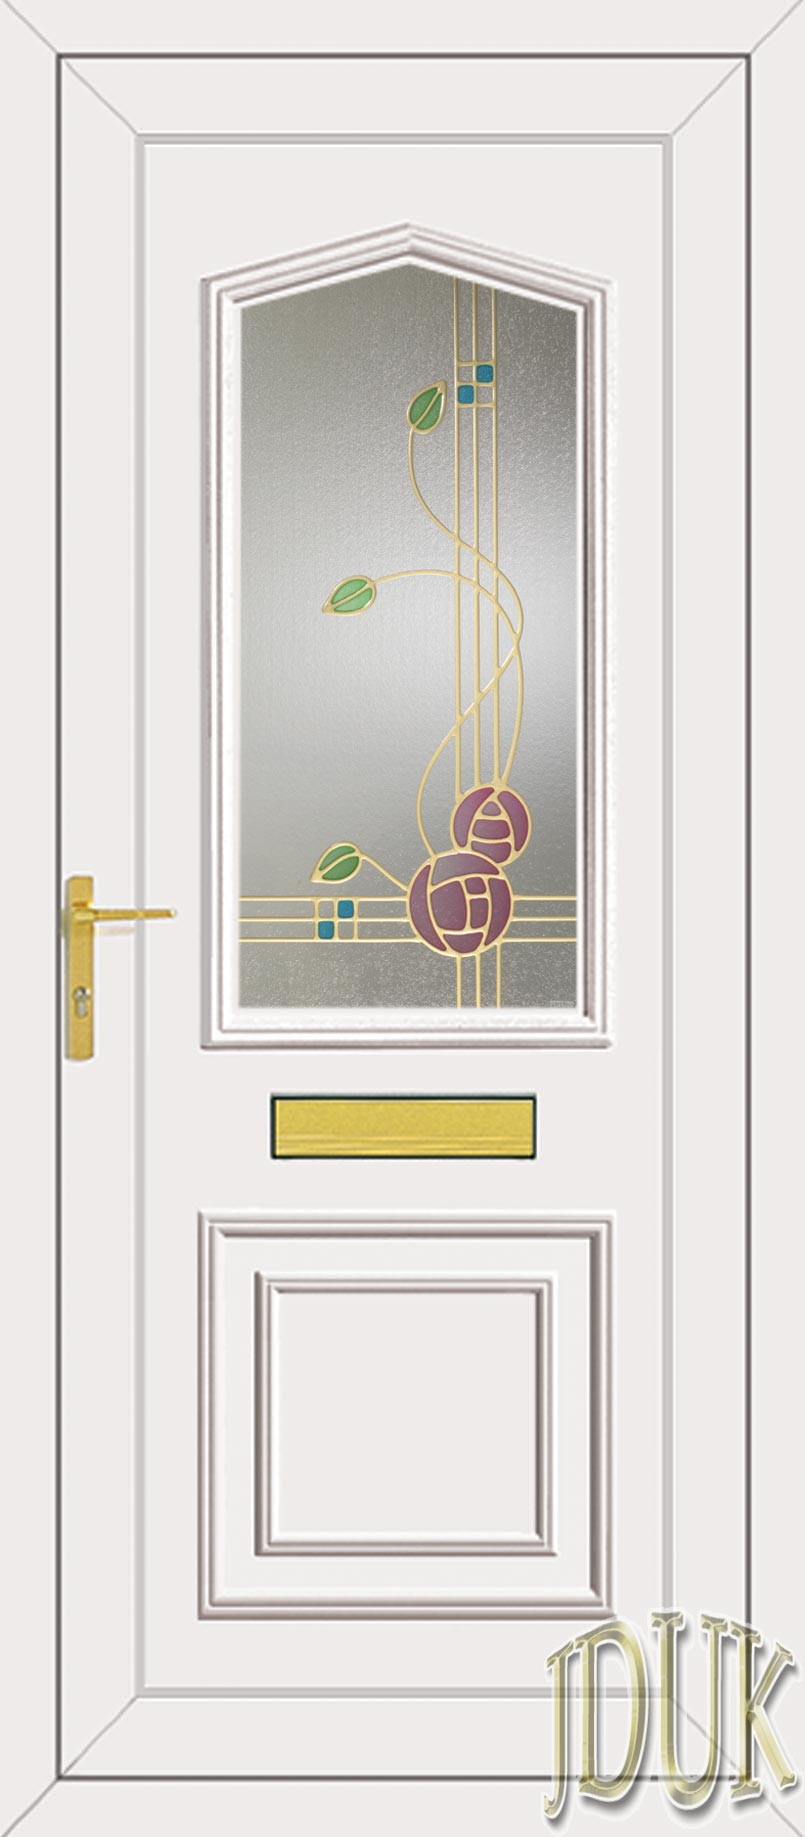 Standard specification for Ready made upvc doors